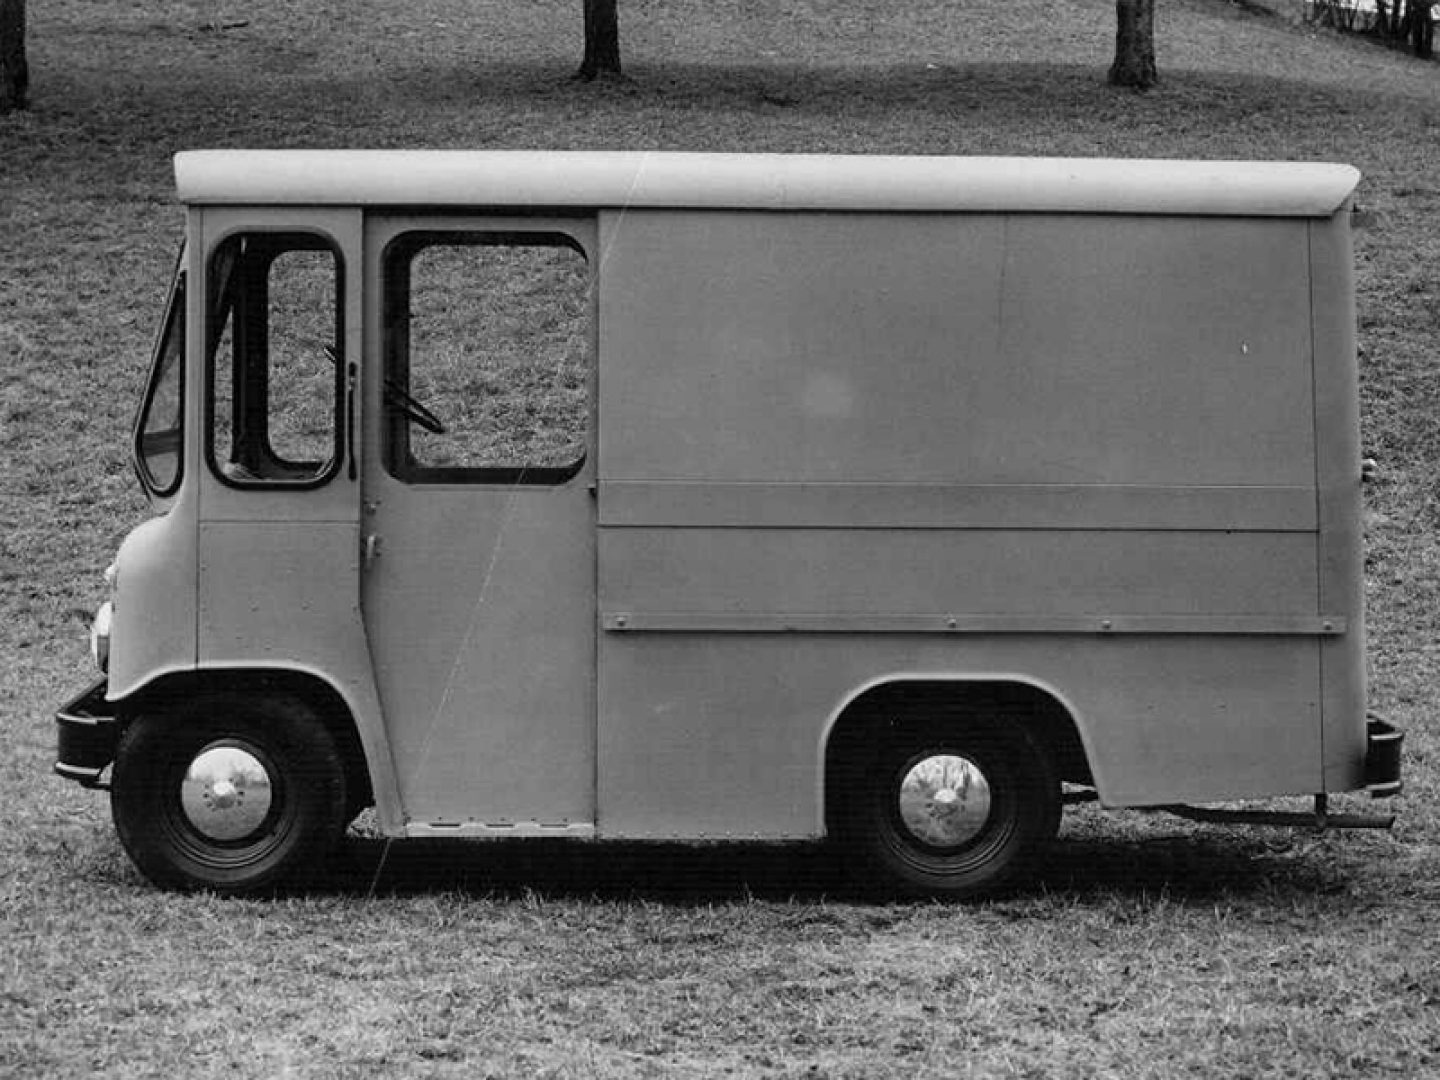 1960s 19601970 Mercedes Benz Trucks Image Alt